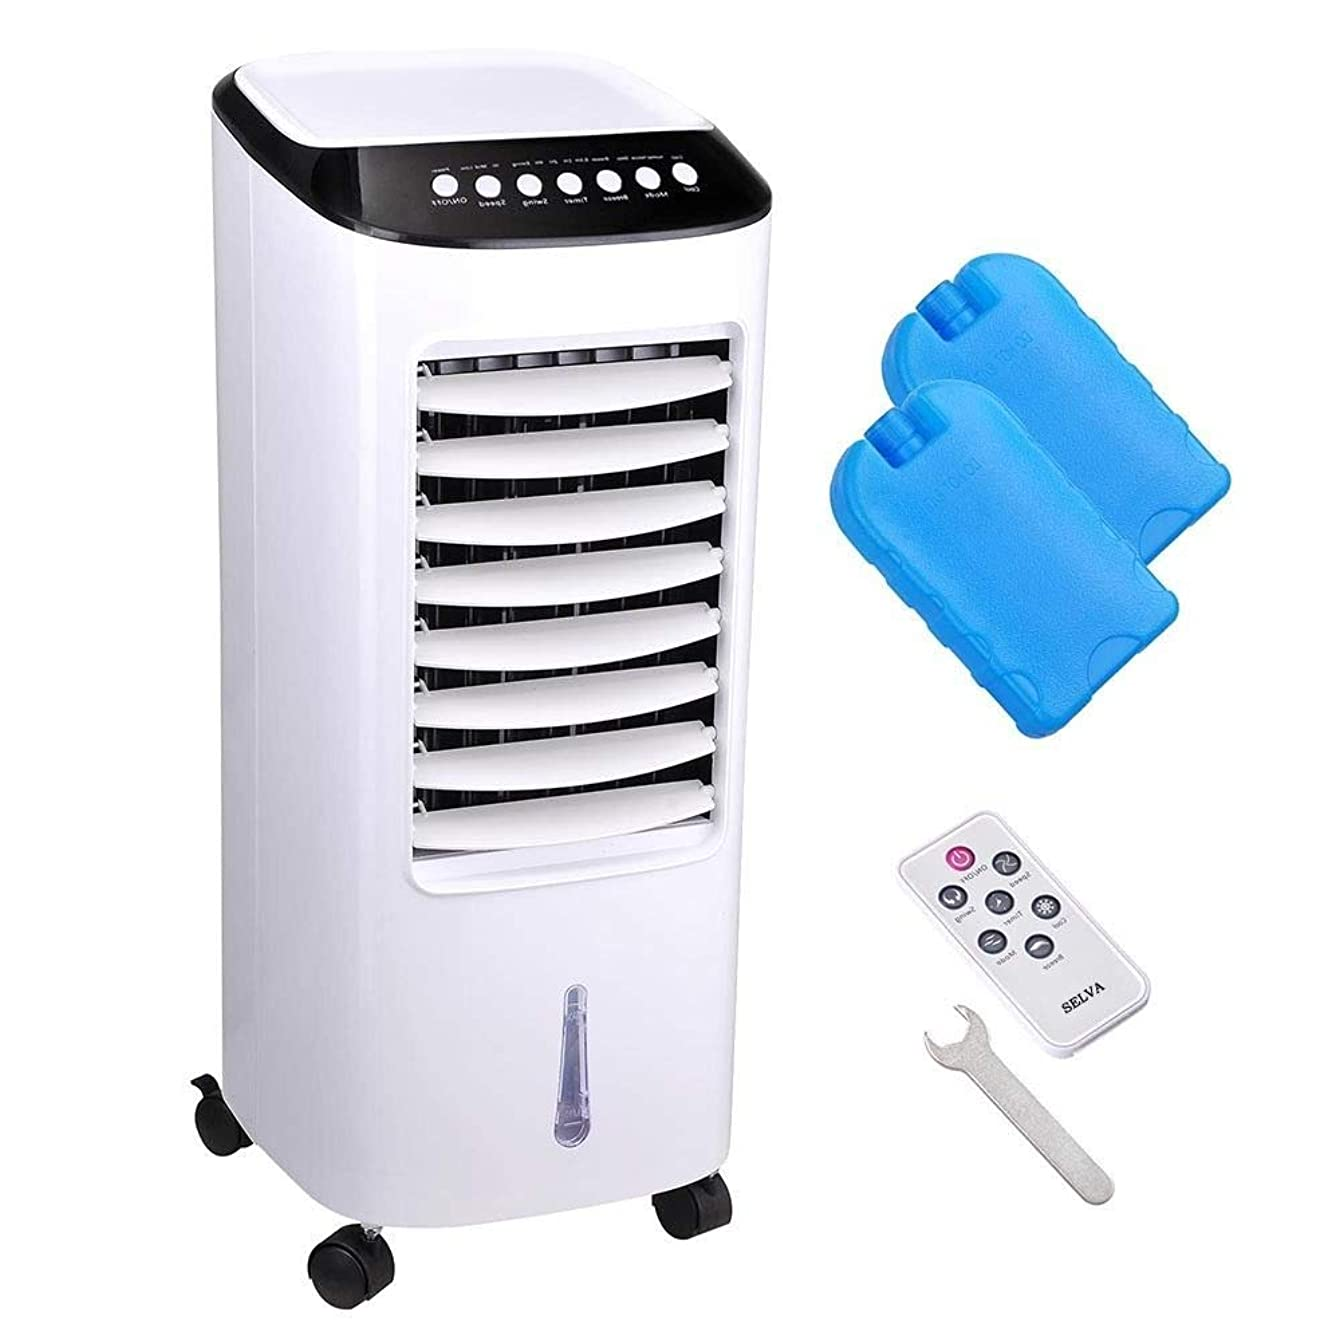 Selva Honeycomb Cooling Media 6L Tank Portable Evaporative Air Cooler w/Remote Control Fan Ionizer & Humidifier   65W Energy Saving Easy to Wash Dust Filter   Three Speed Mode Environment Friendly